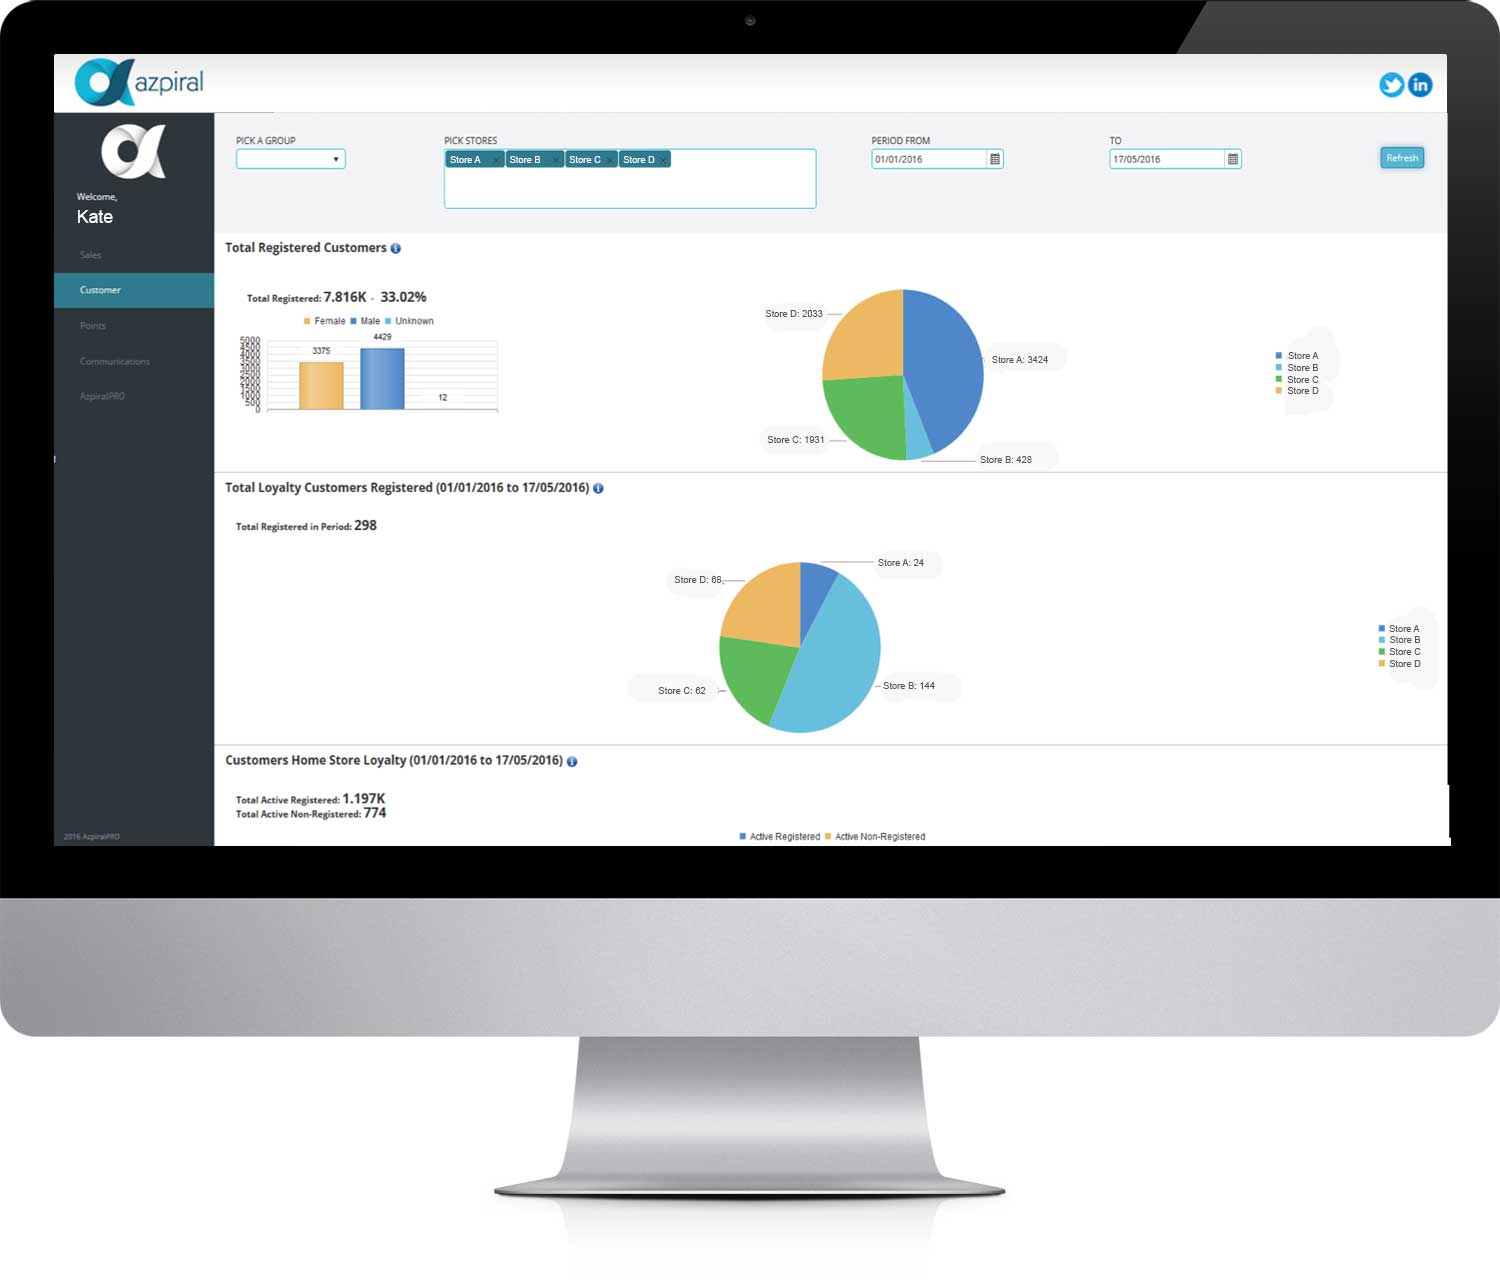 AzpiralPRO business analytics